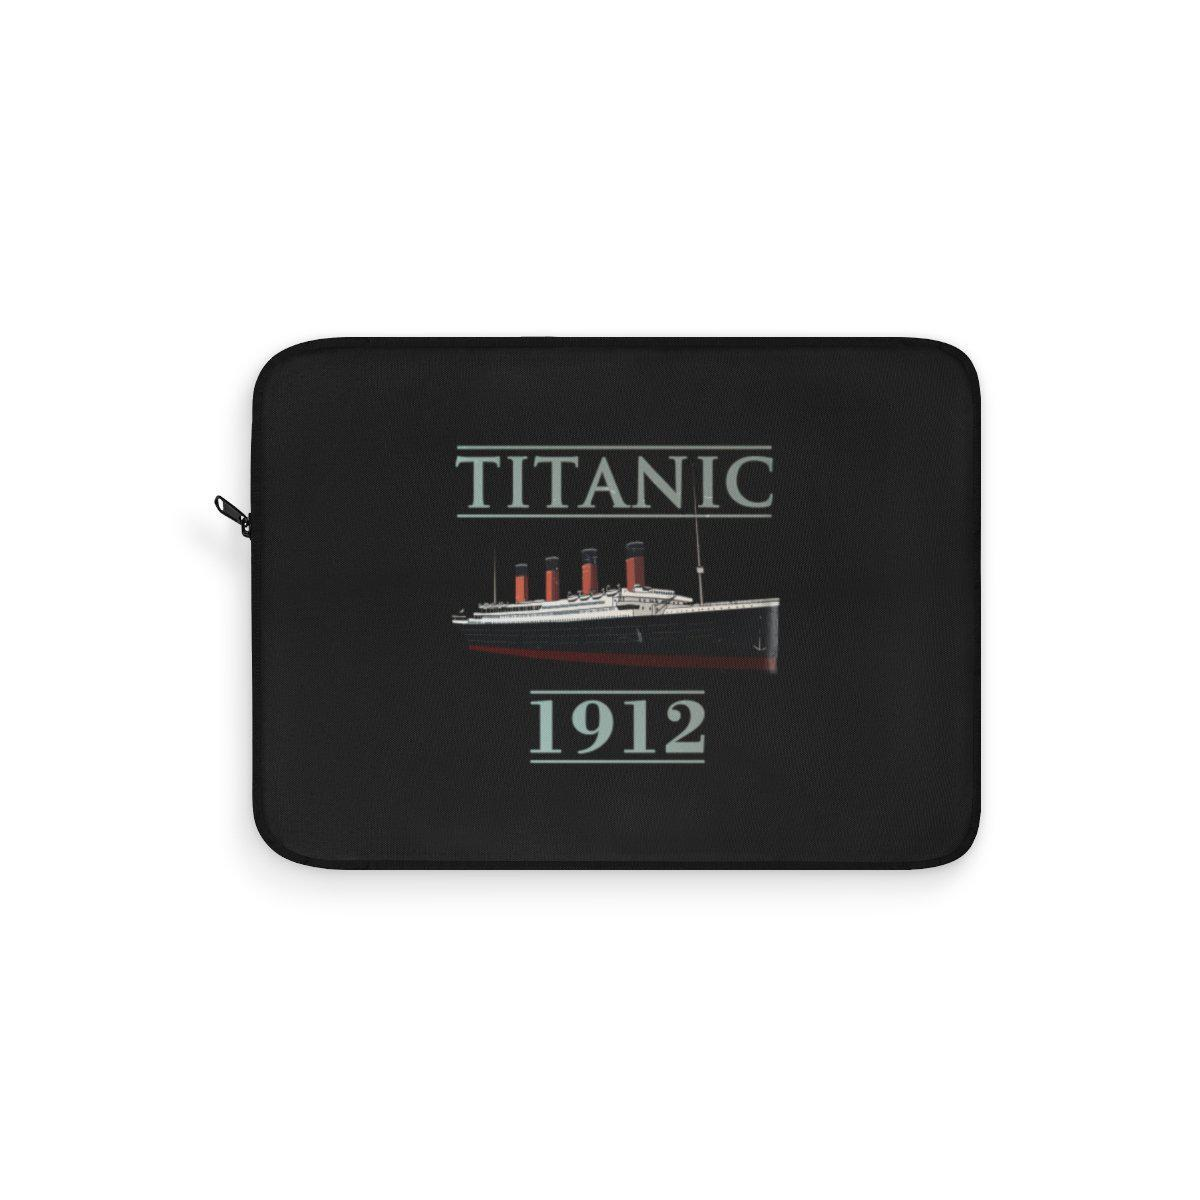 Best laptop sleeves for Titanic lover, Titanic 1912 stylish black laptop sleeves - history buff gift-Laptop Sleeve-Printify-titanic-school-tote-bag-backpack-duffel-drawstring-white-star-line-Titanic shop